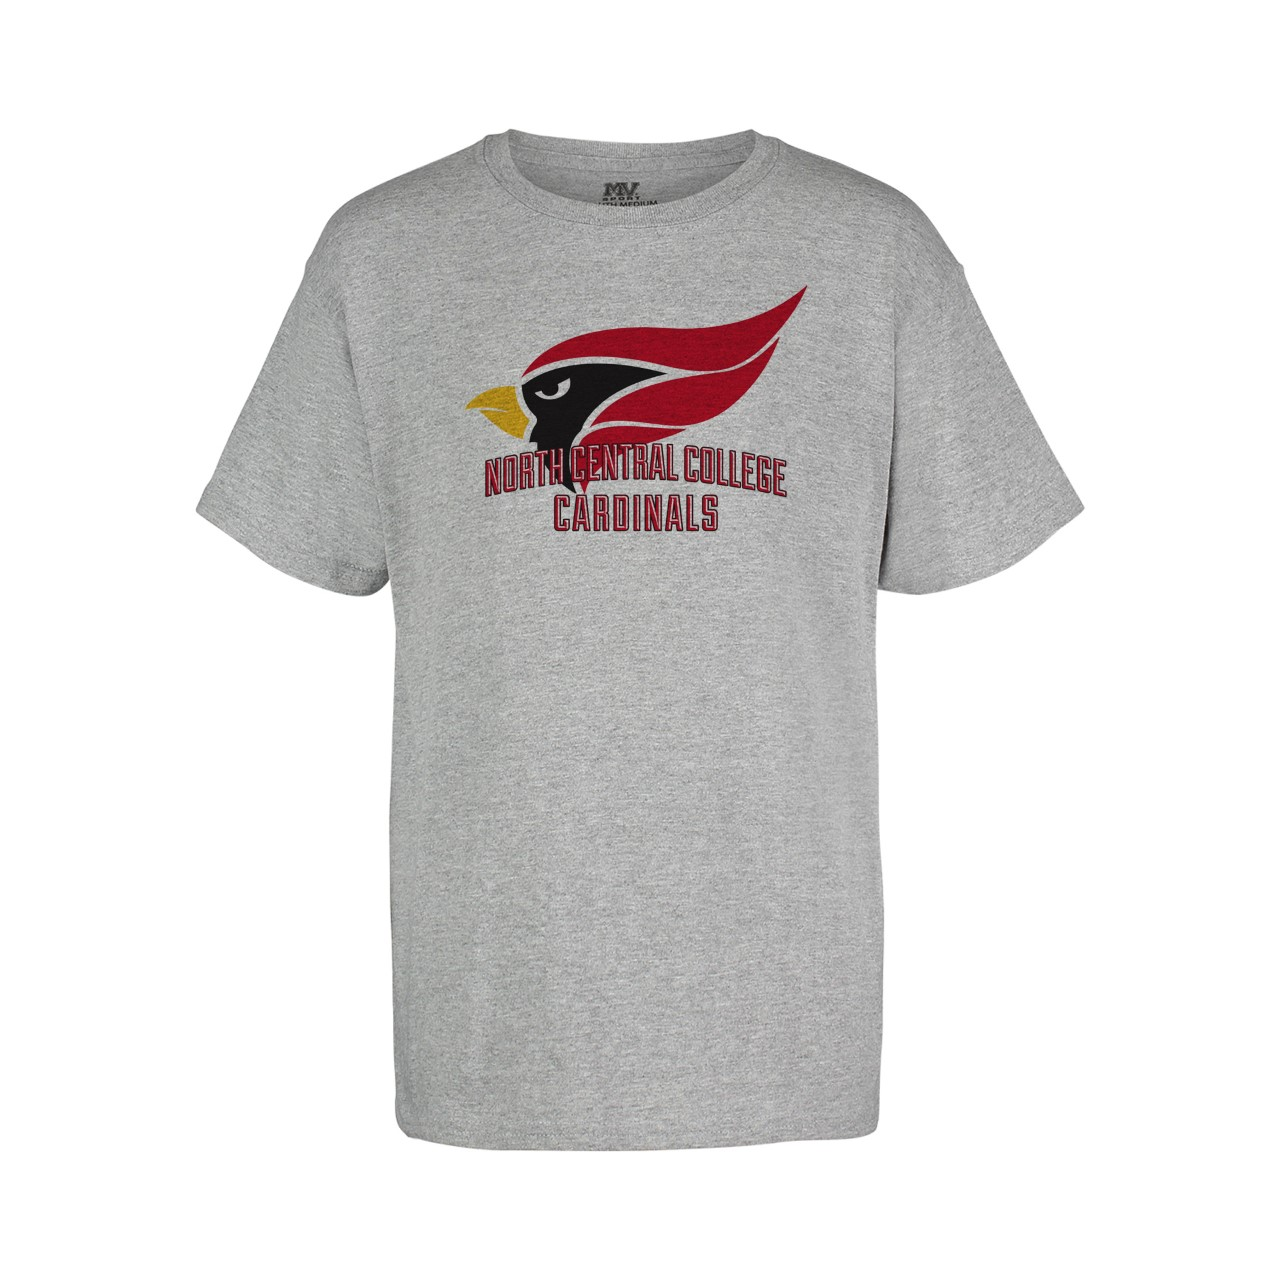 Image for the Youth Tee with Cardinal by MV Sport product